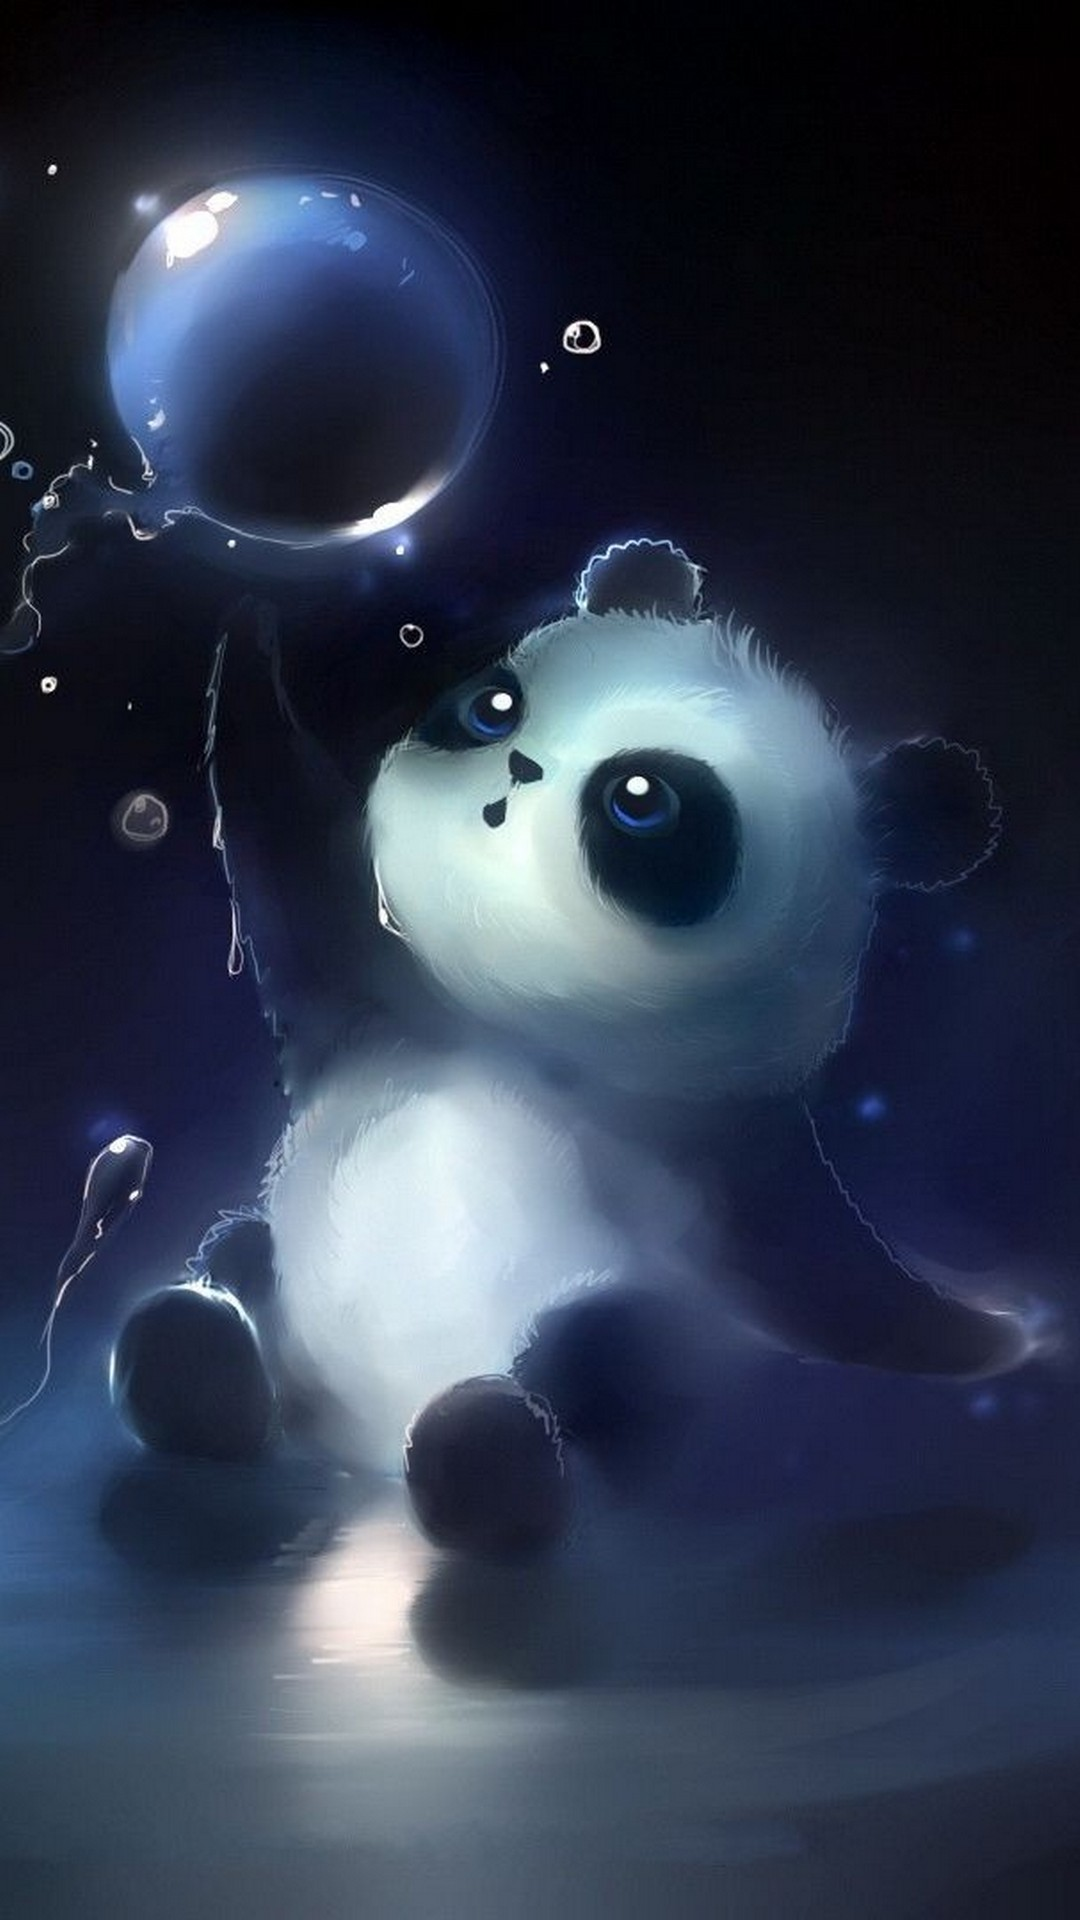 Android Wallpaper Hd Baby Panda With Hd Resolution - Fondos De Pantalla De Pandas , HD Wallpaper & Backgrounds